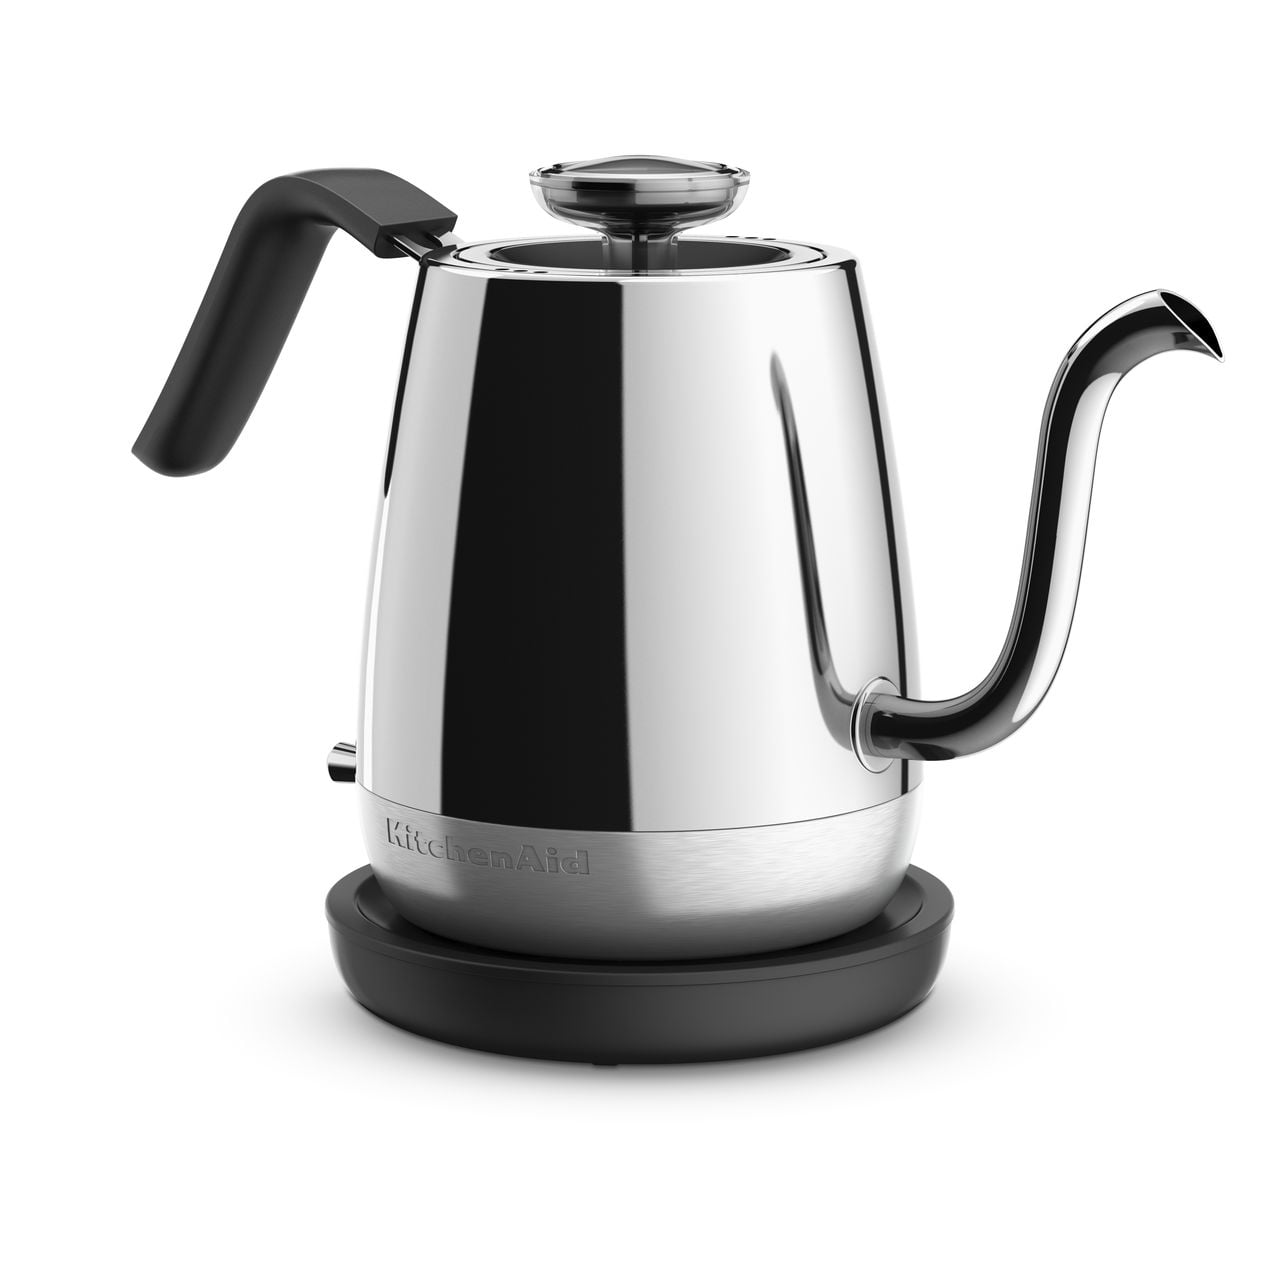 Kitchenaid Precision Gooseneck Electric Kettle Stainless